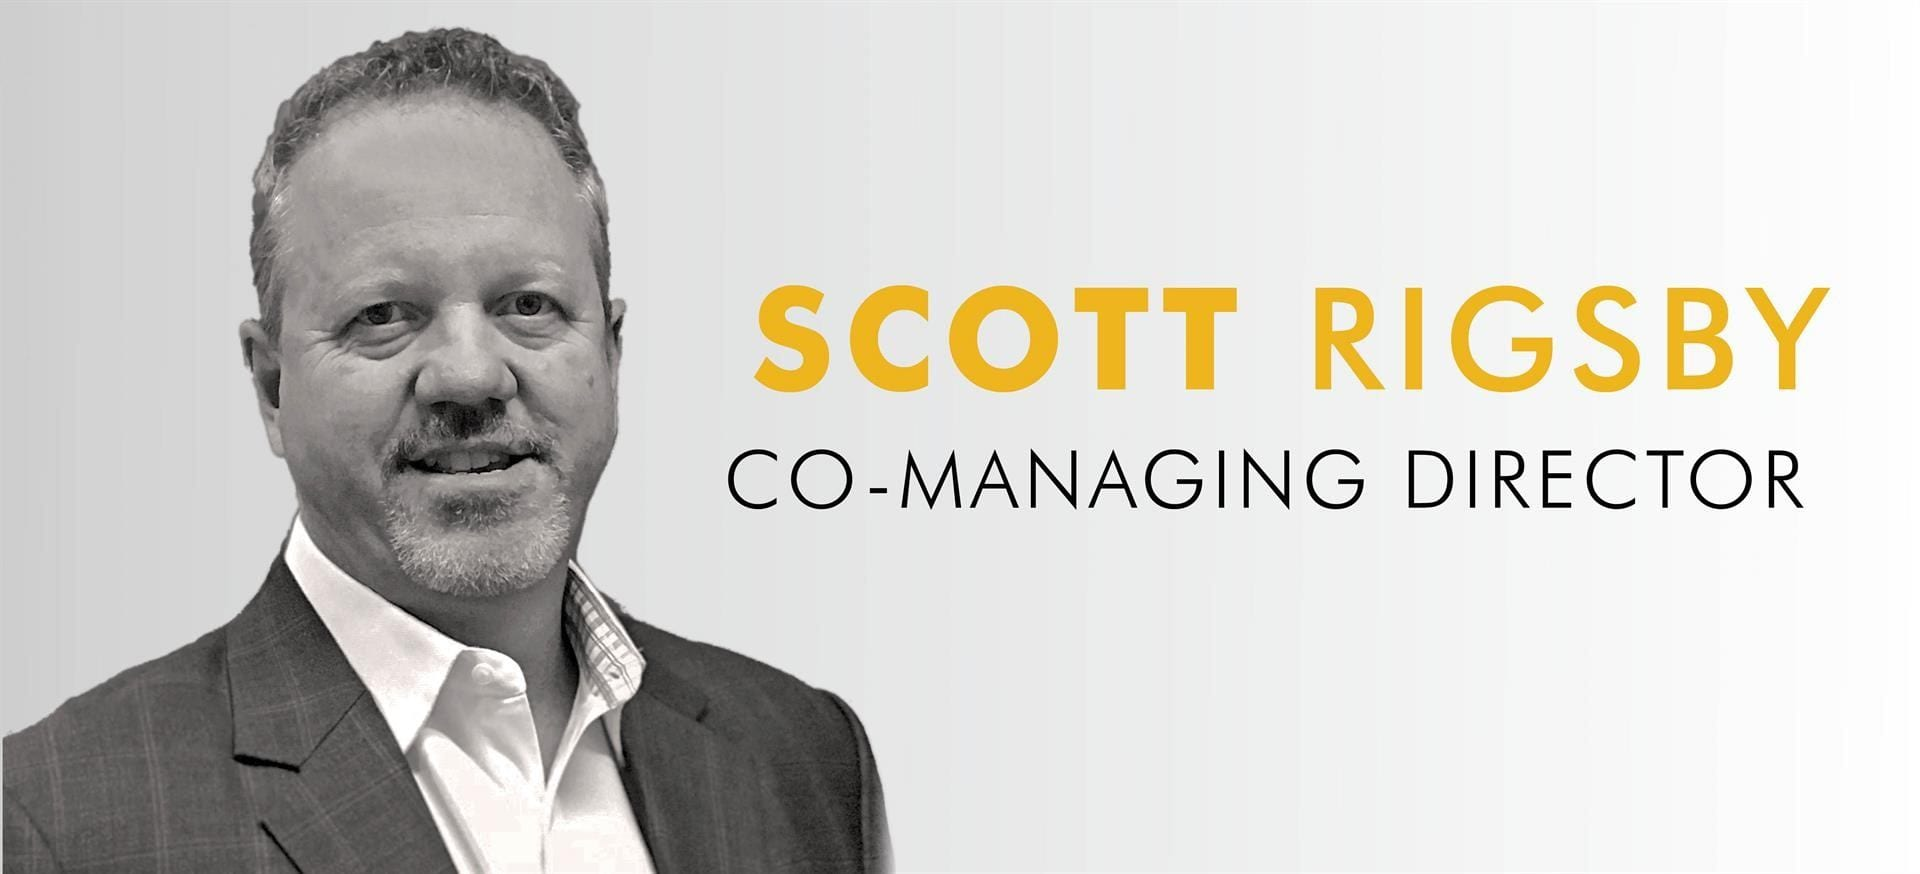 Scott Rigsby Promoted to Co-Managing Director of IA's Charlotte Office